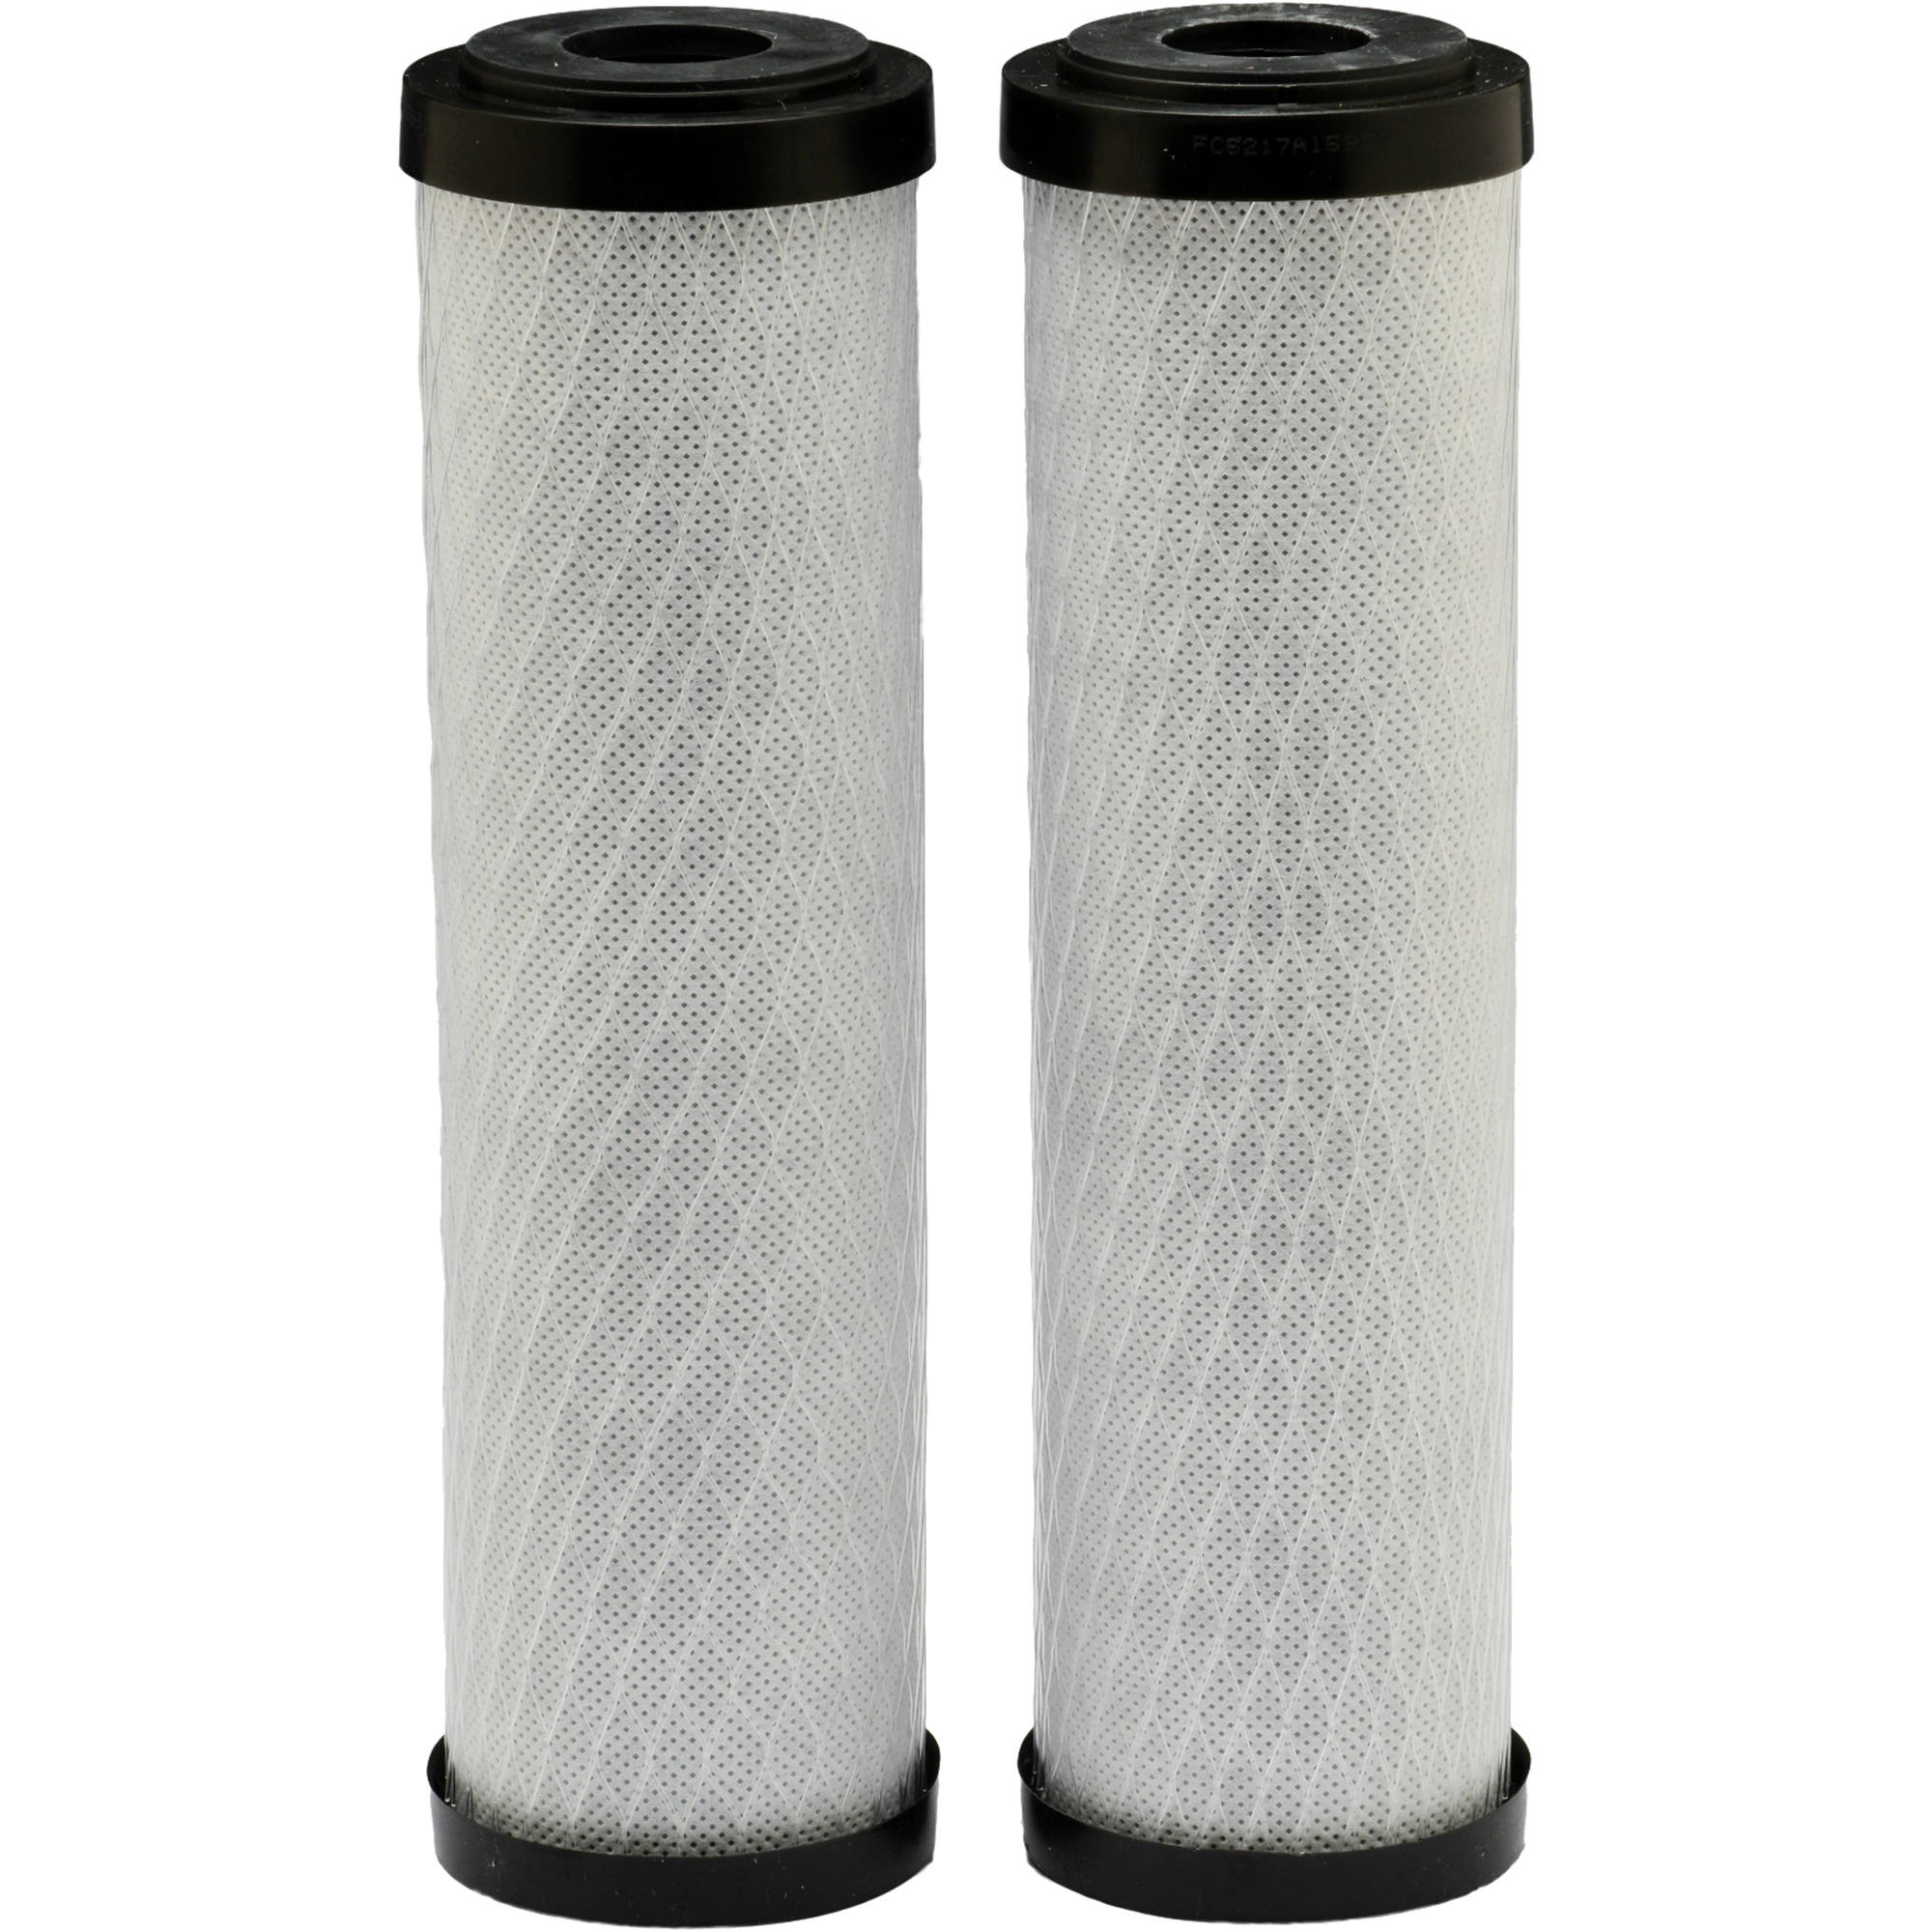 EcoPure EPW2C Carbon Whole House Replacement Water Filter, Universal Fit, Fits Most Major Brand Systems (2 pack)